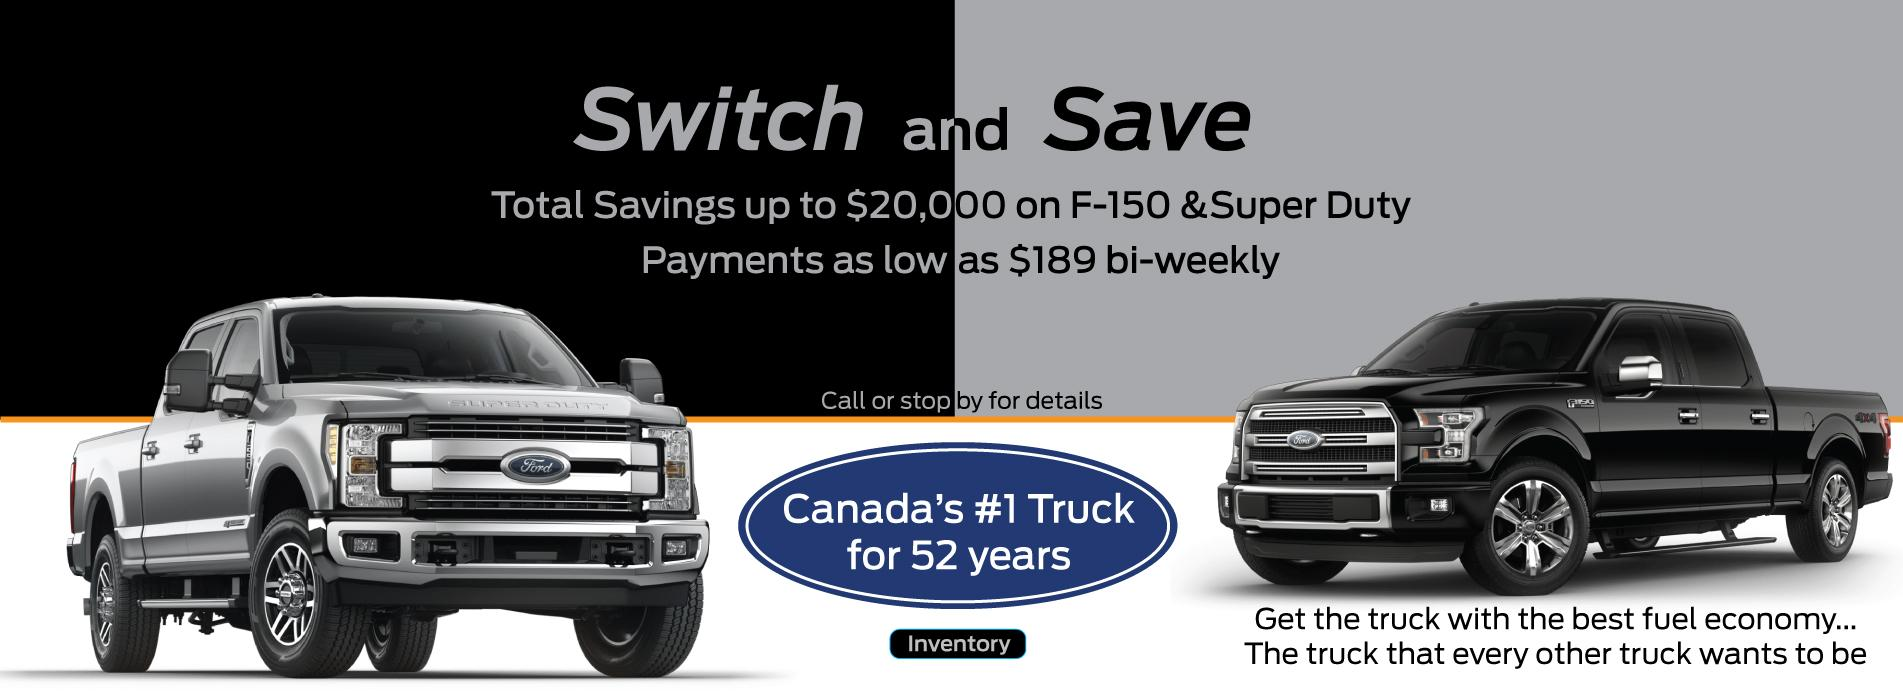 SwitchSave_Truck